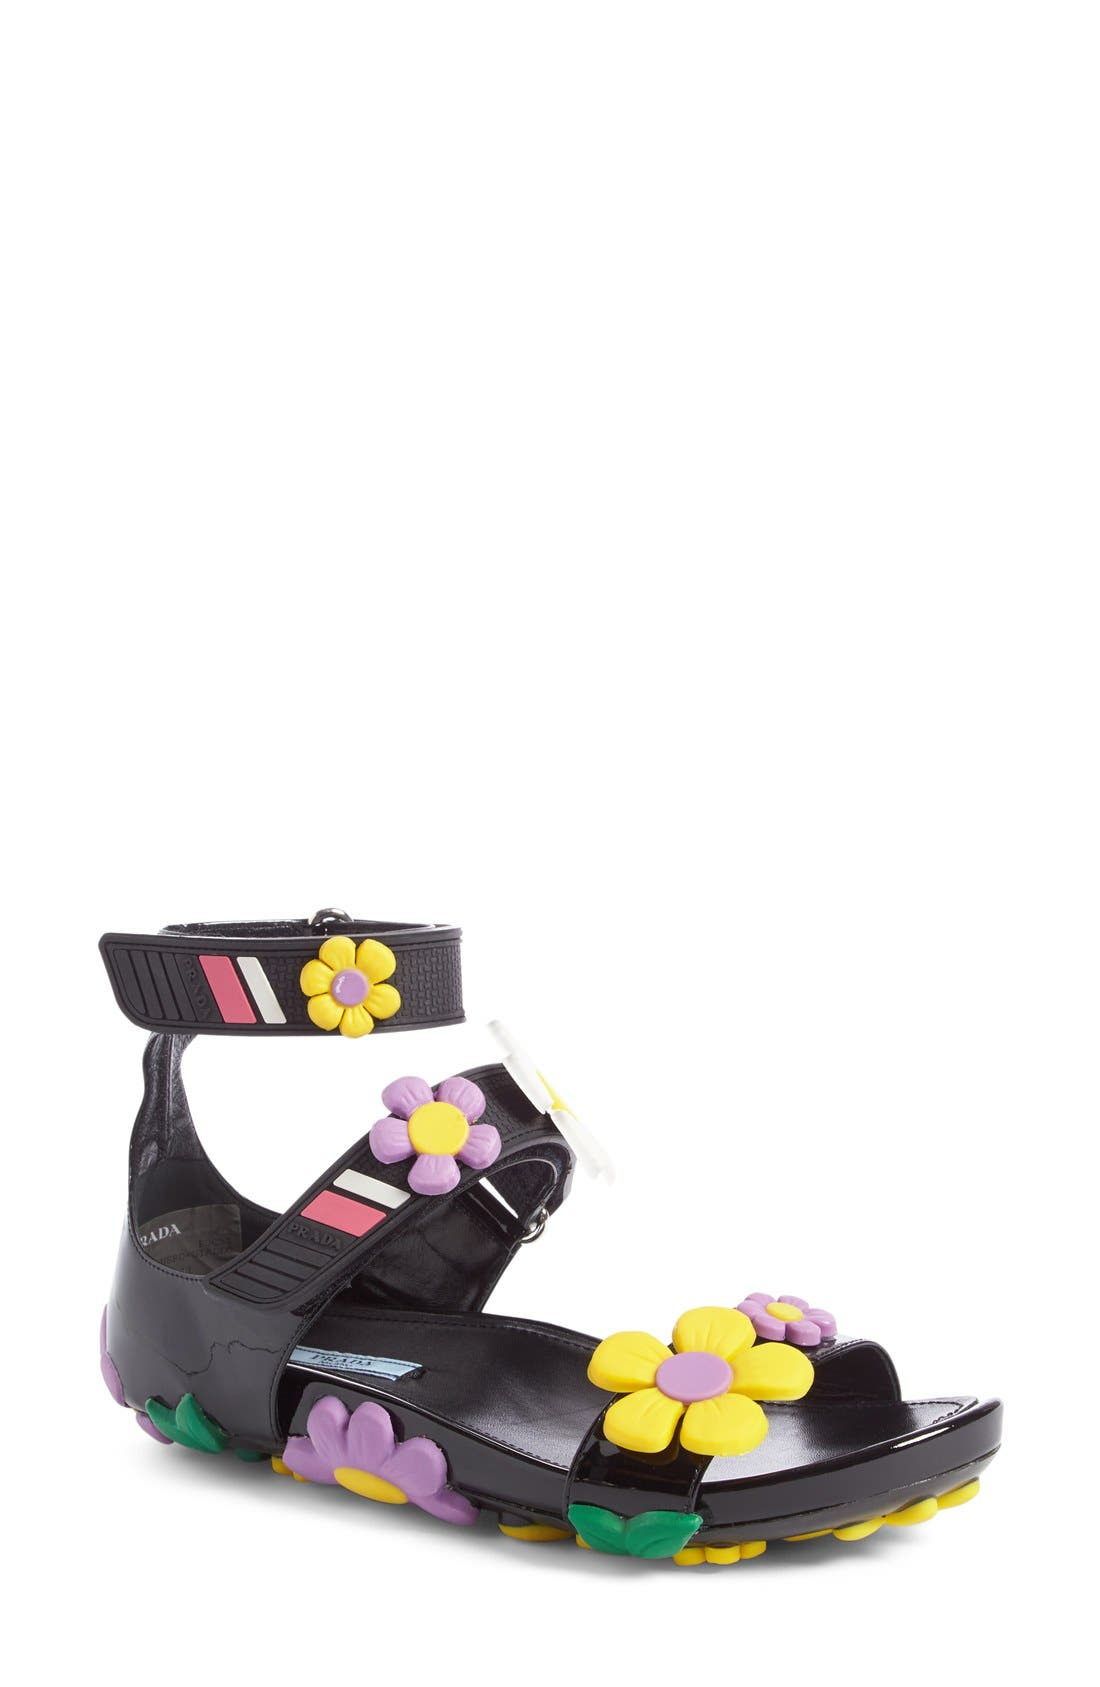 Alternate Image 1 Selected - Prada Floral Triple Band Sandal (Women)